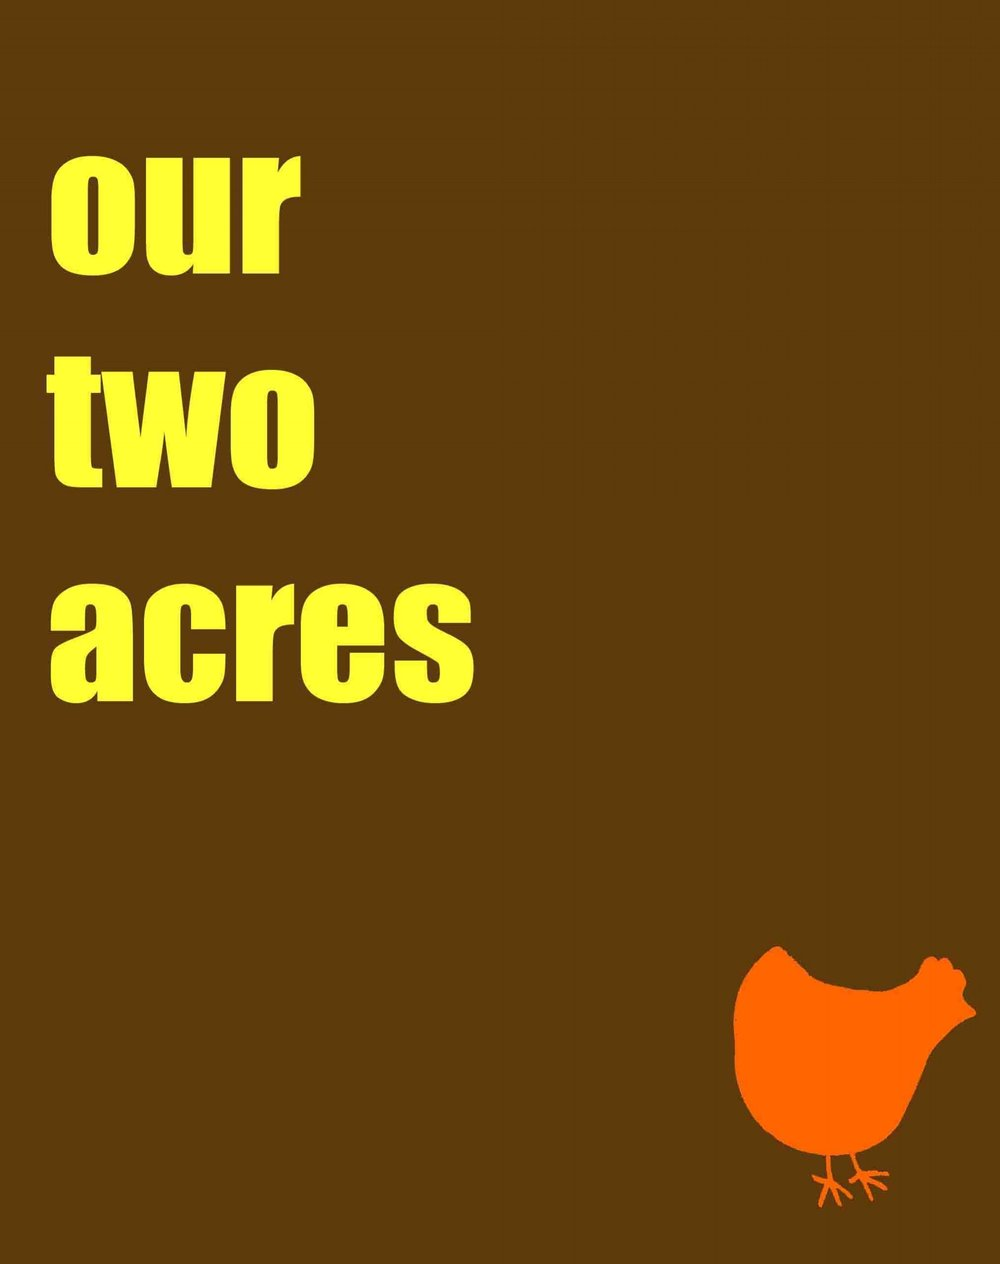 ourtwoacres